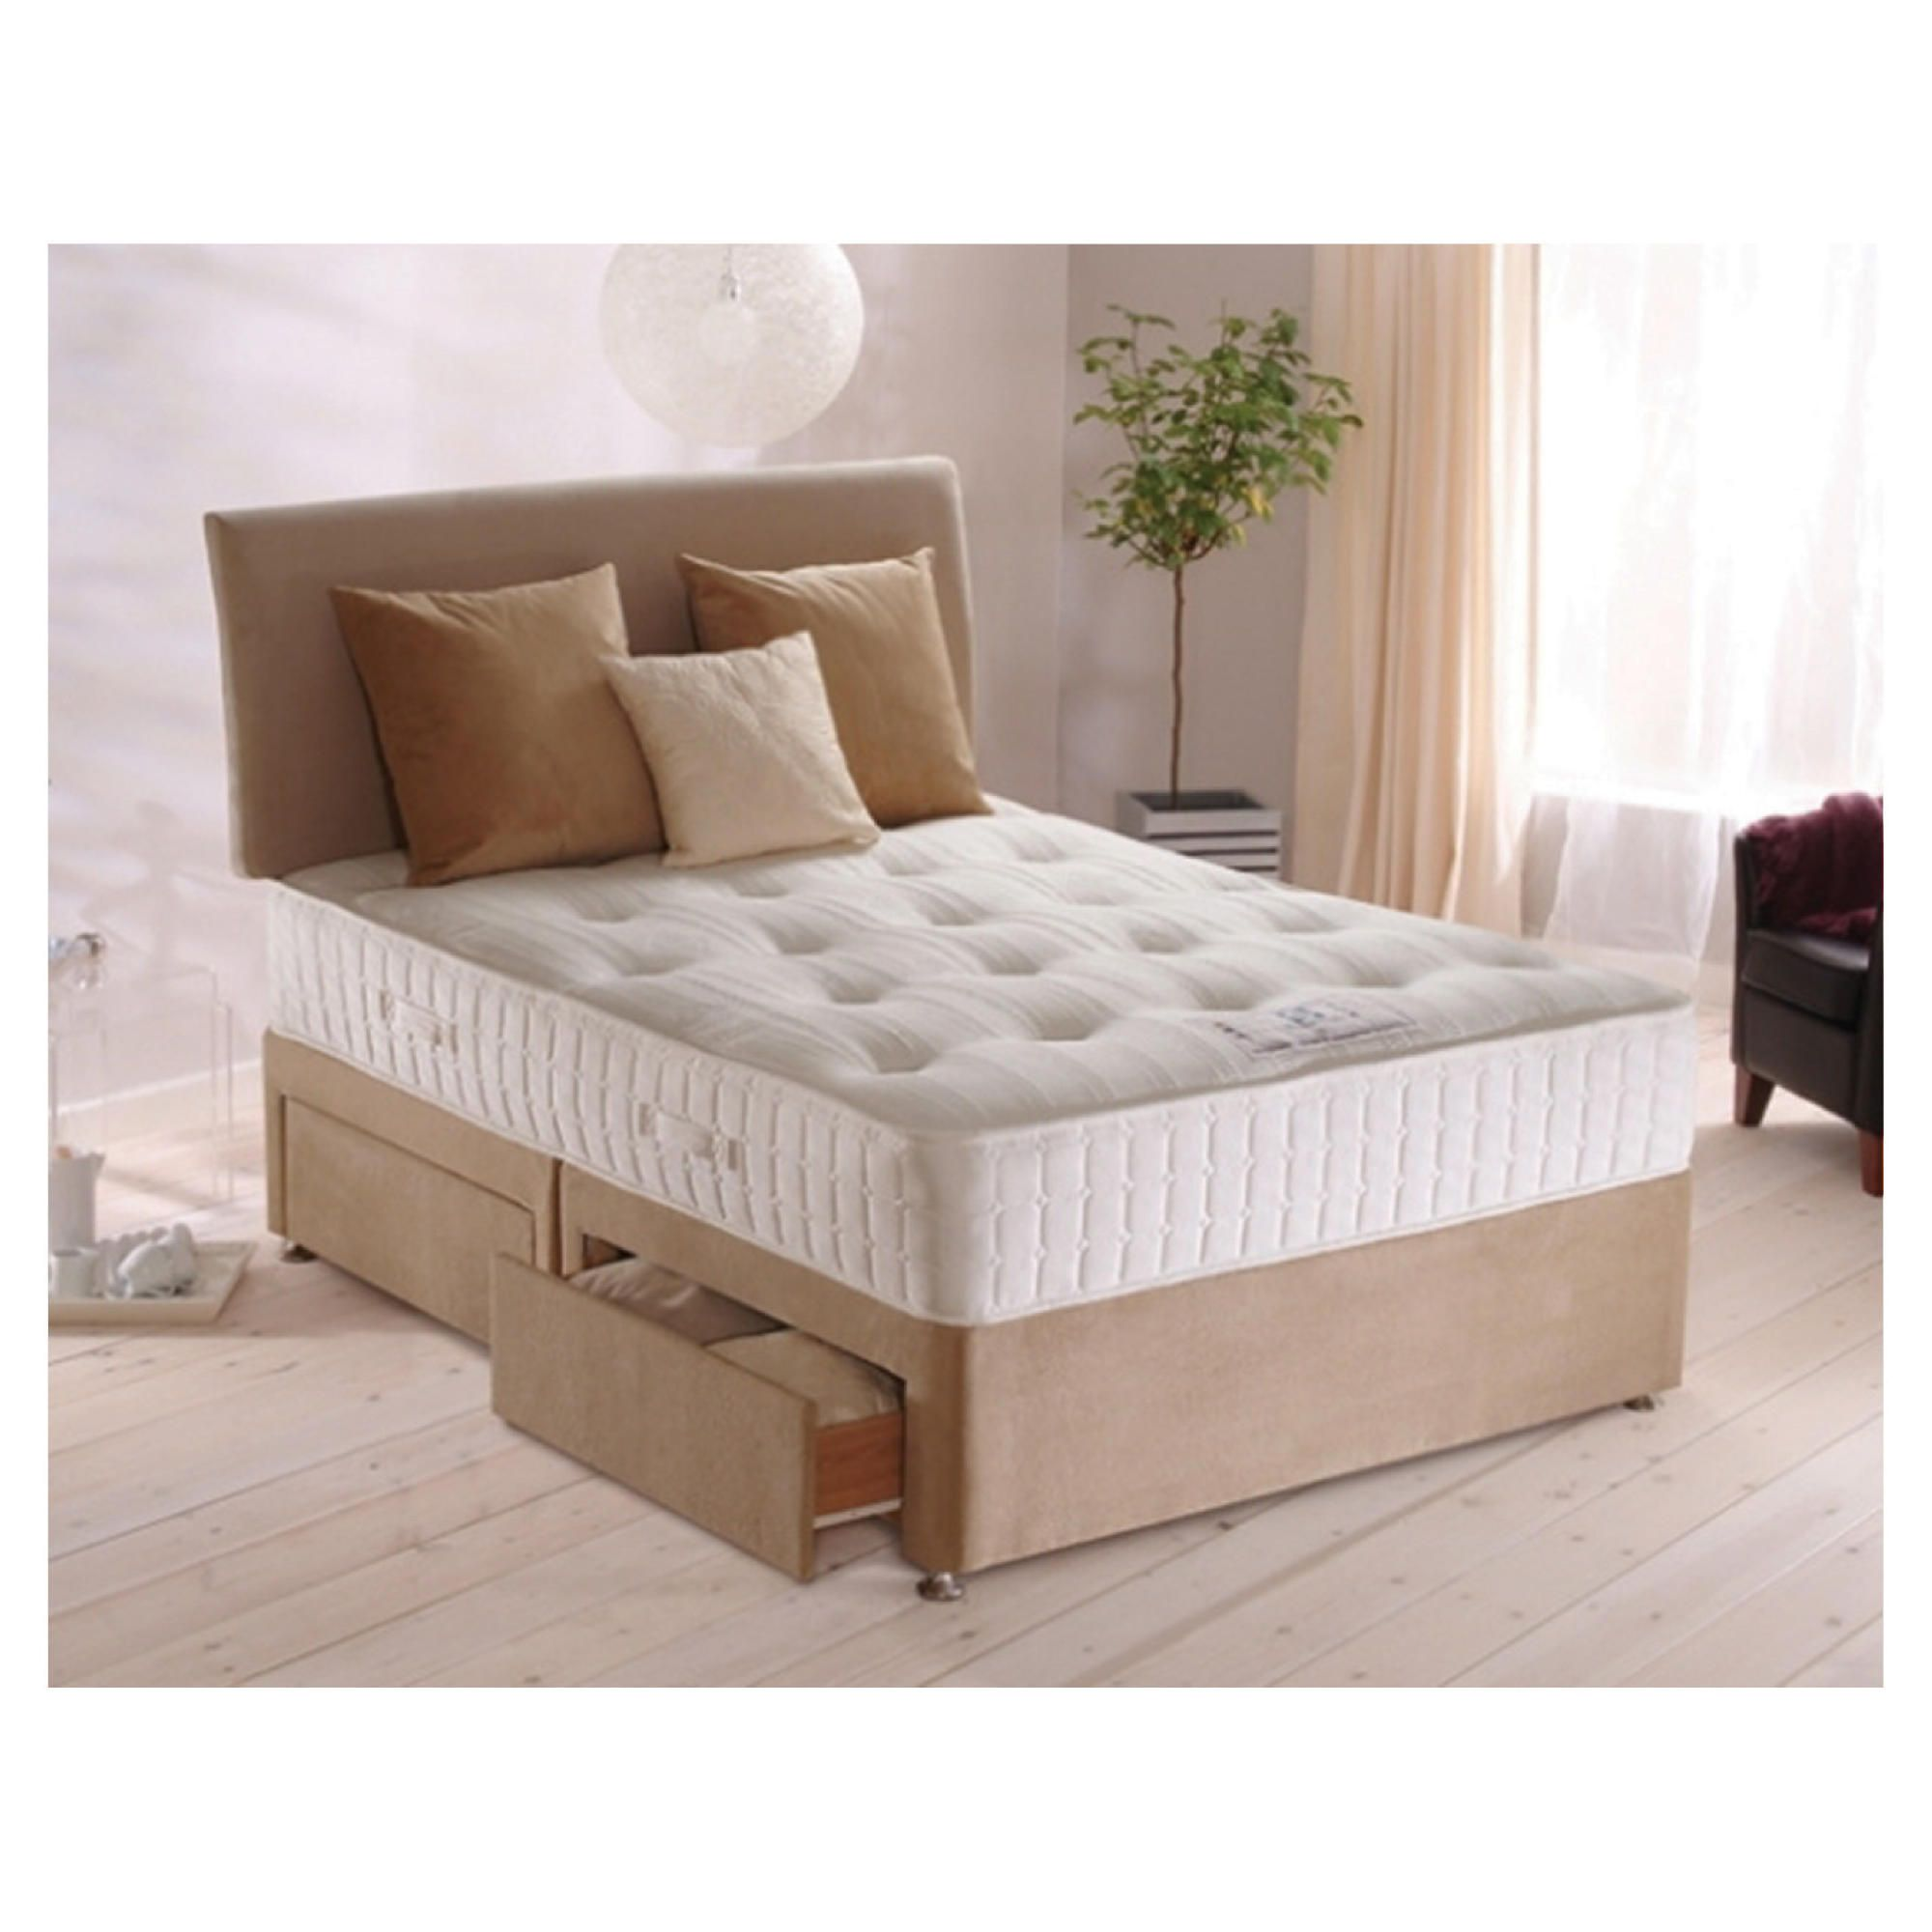 Sealy Purity Pocket Ortho King 4 Drawer Divan Bed at Tesco Direct